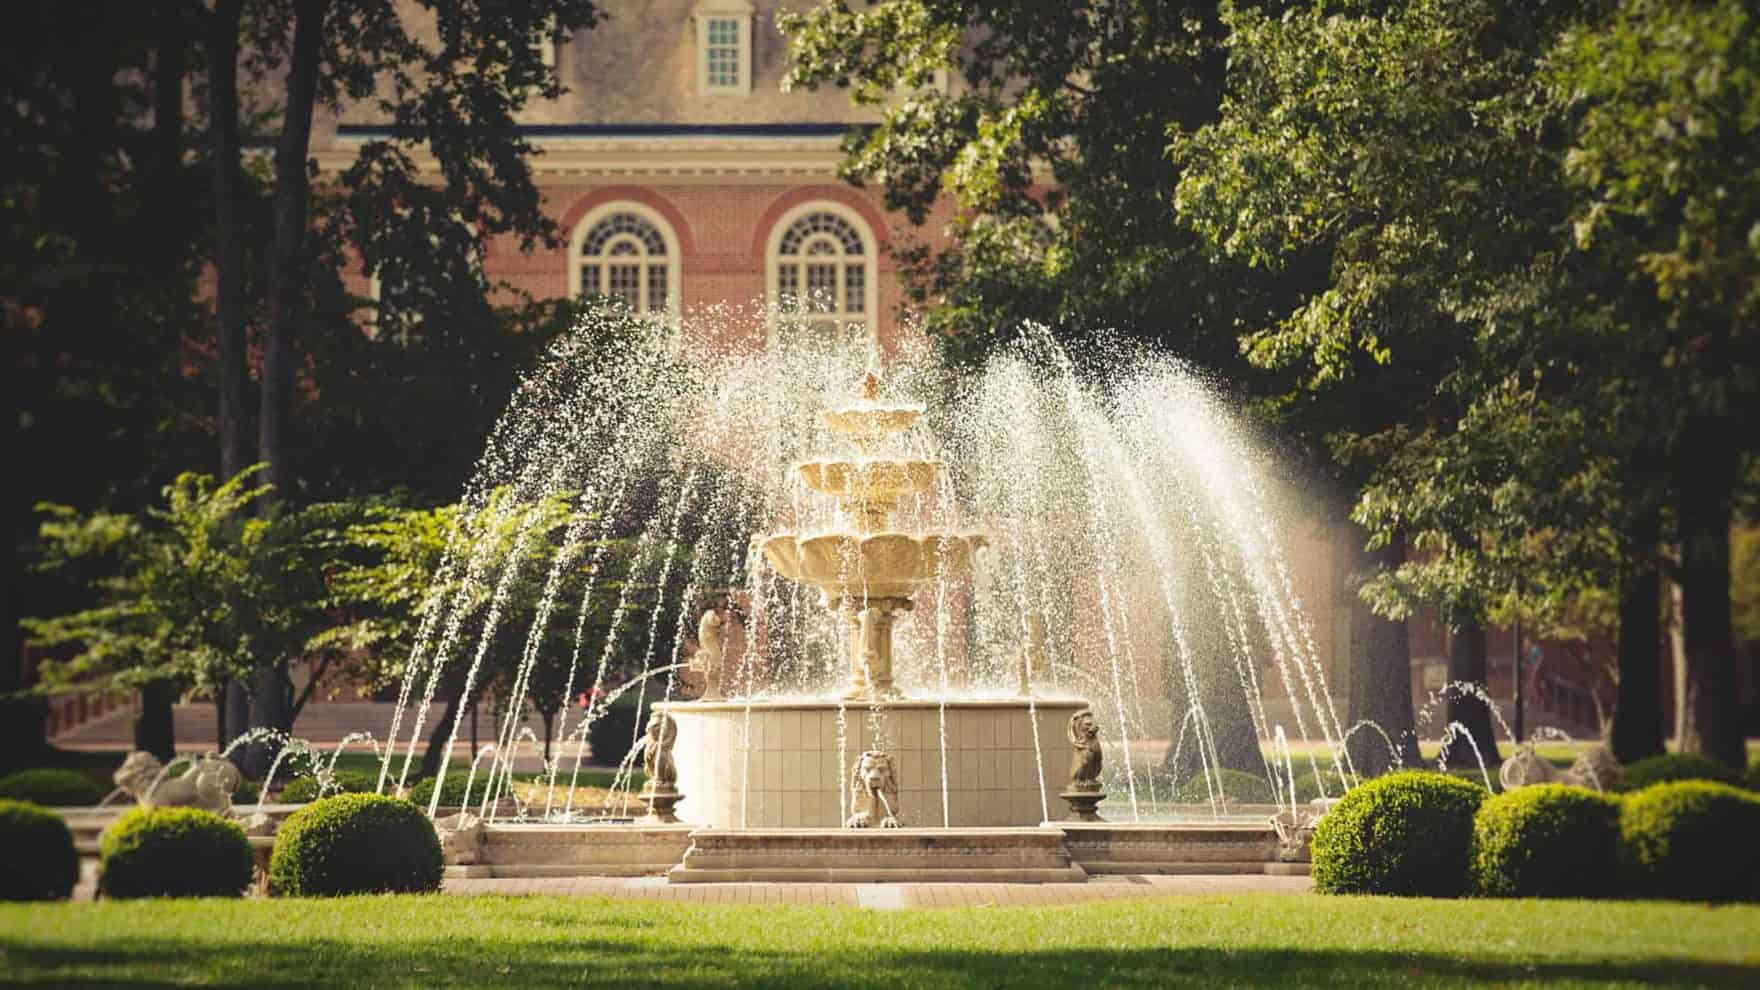 The fountain at Regent University's beautiful campus in Virginia Beach, VA 23464.